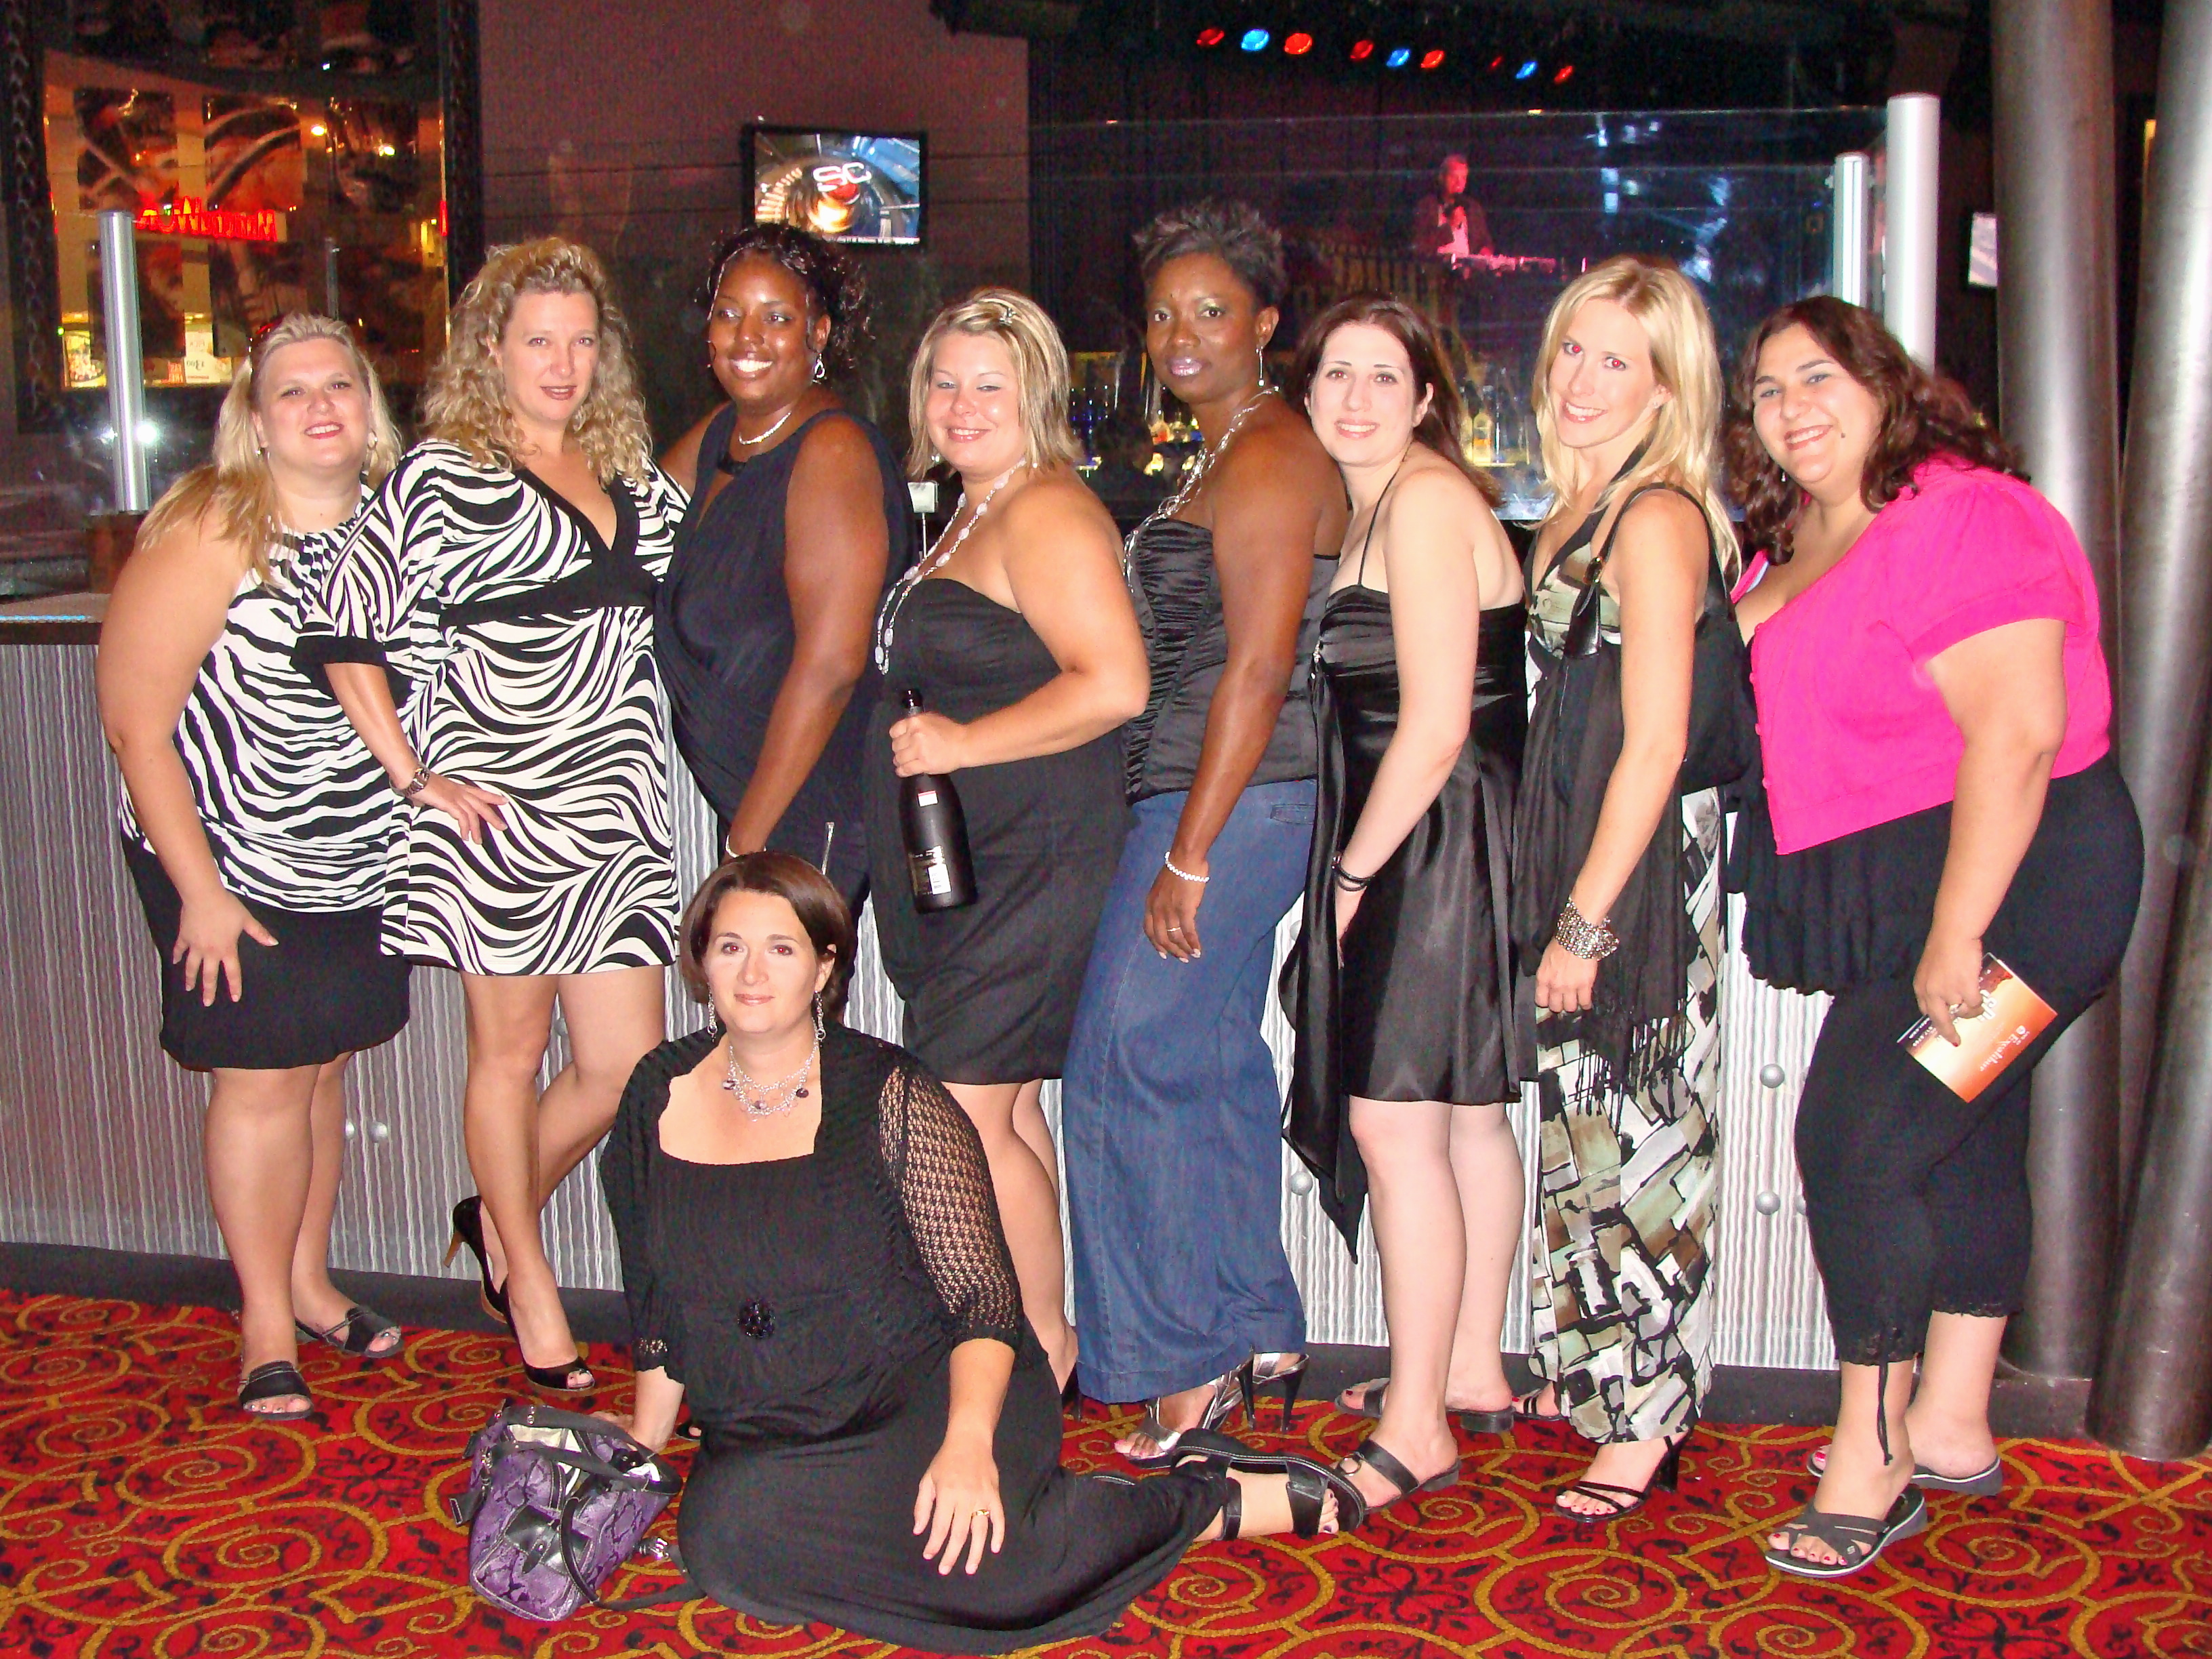 las vegas bachelorette ideas - the wedding planners blog